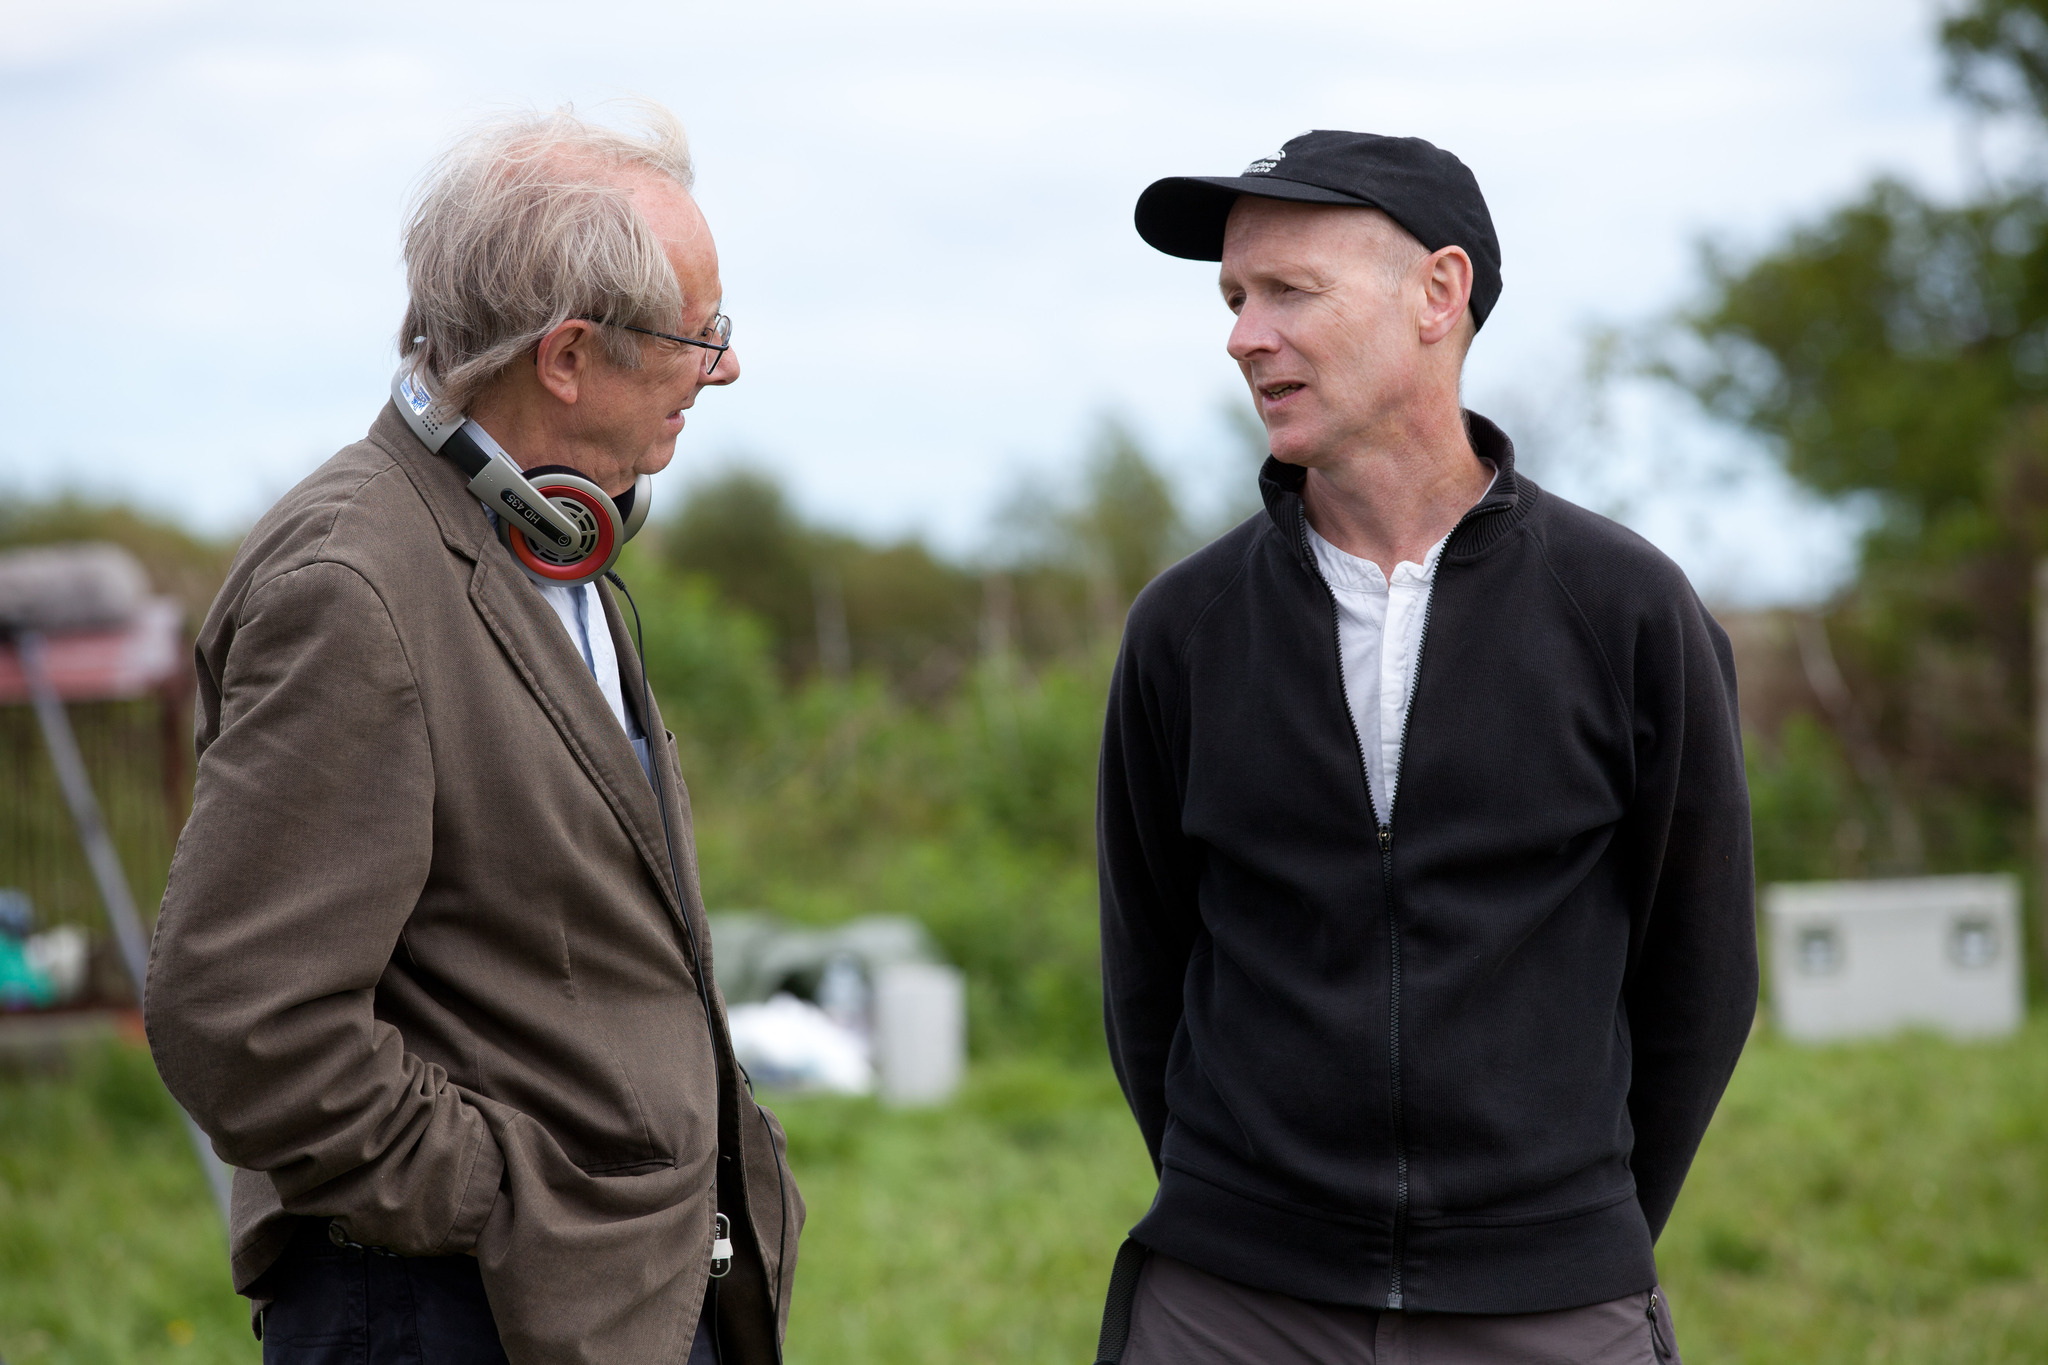 Paul Laverty and Ken Loach in The Angels' Share (2012)